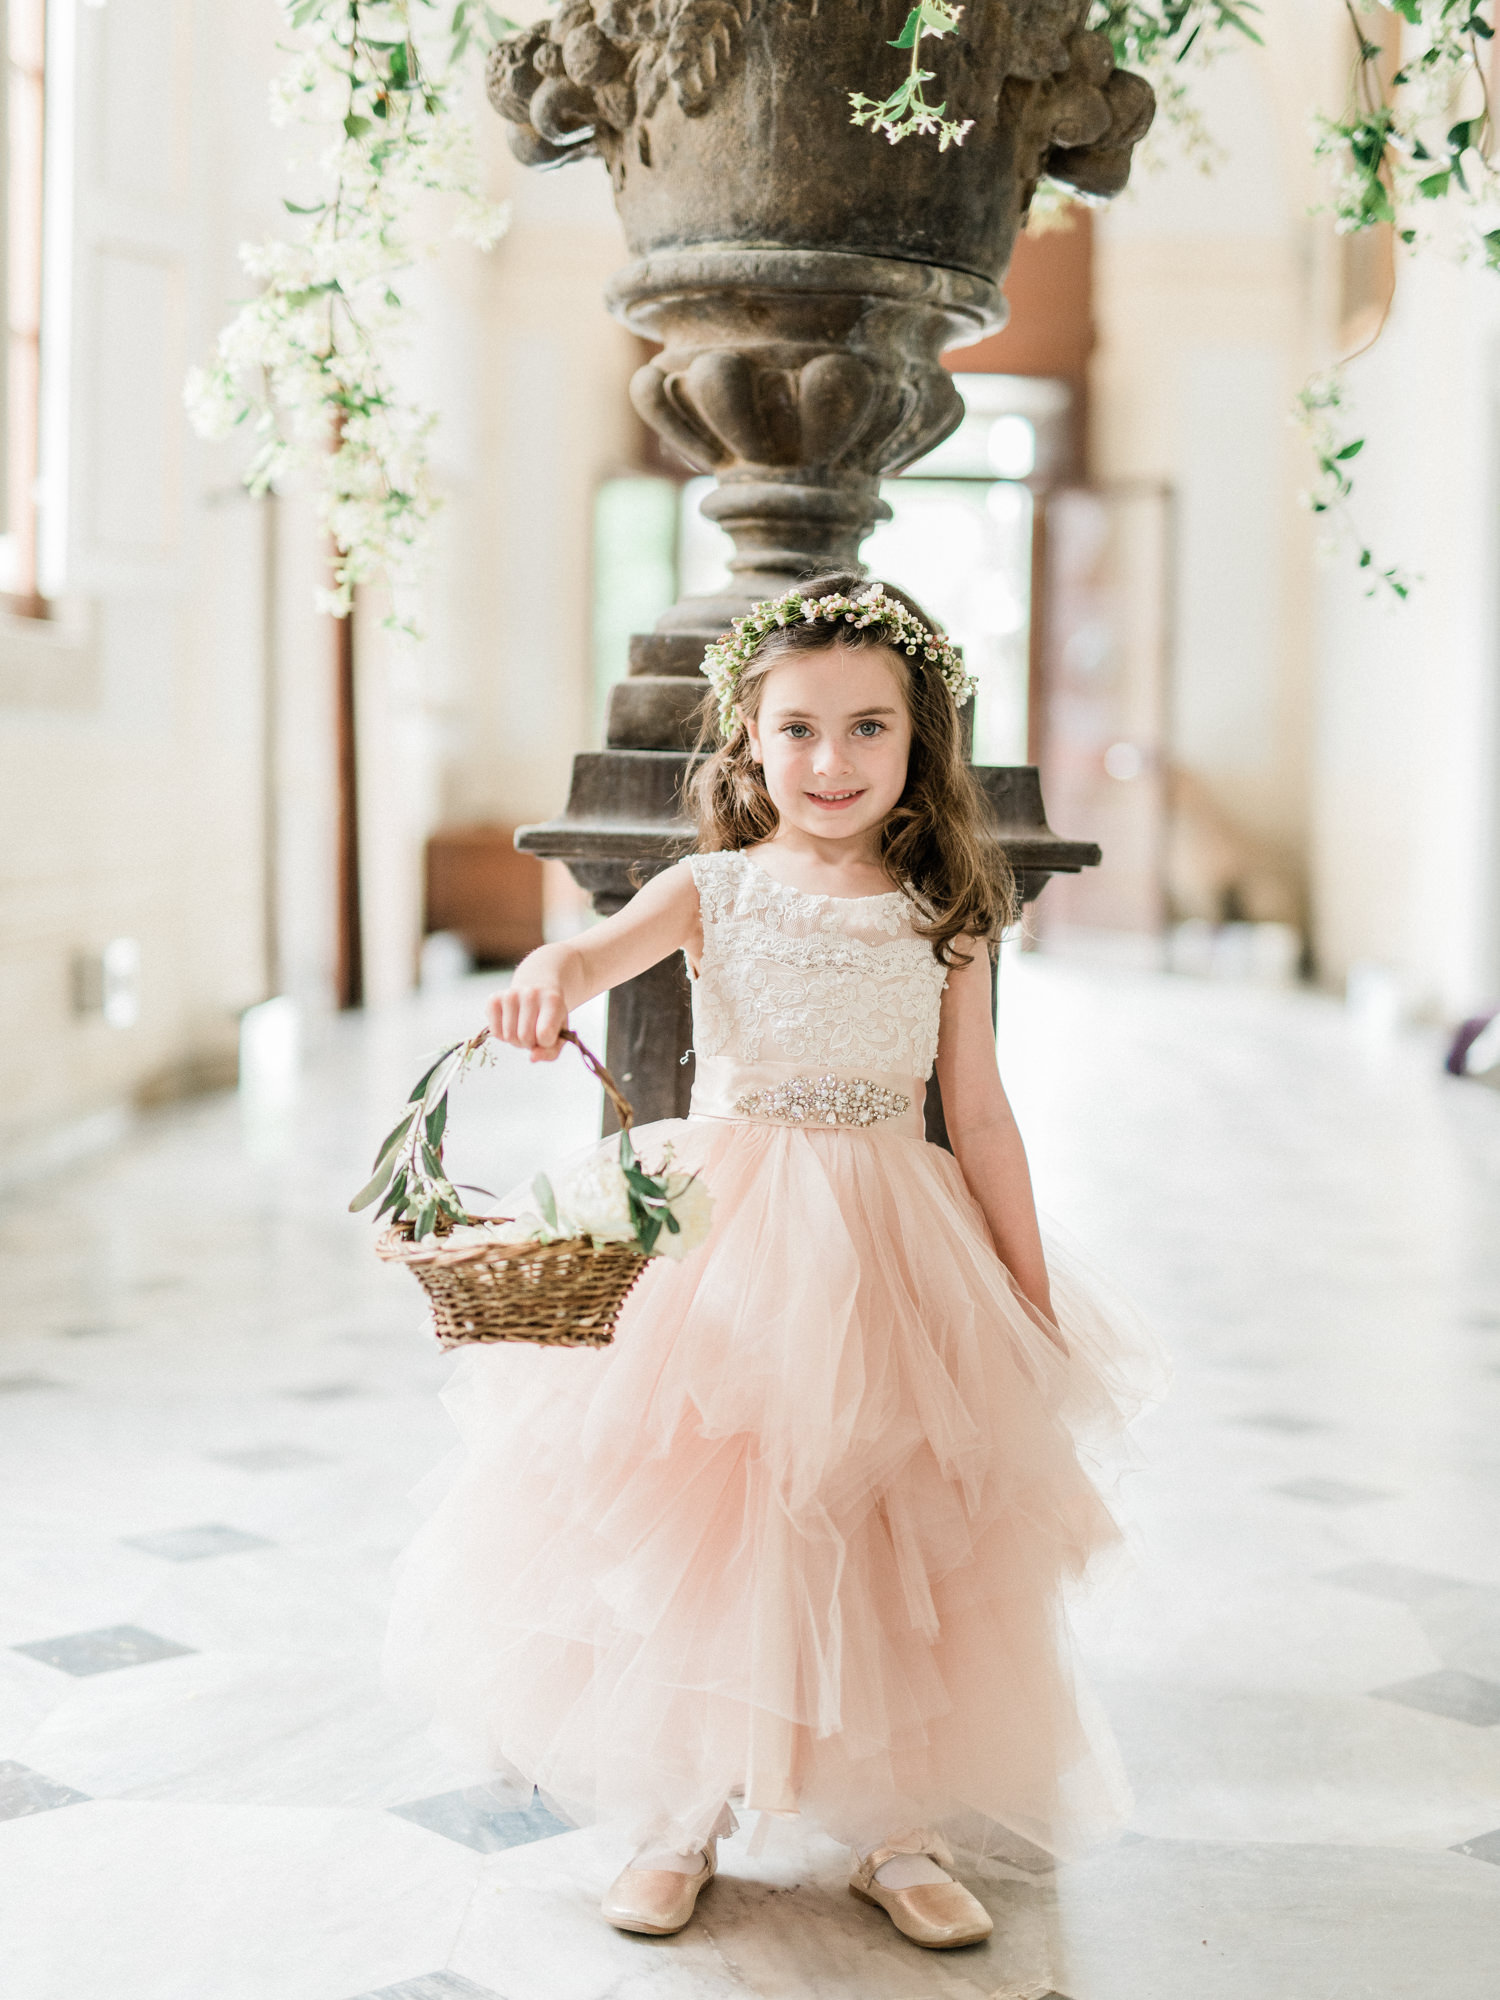 Flower girl in blush tulle dress with basket wearing floral crown - photo by Gianluca Adoviaso Photography